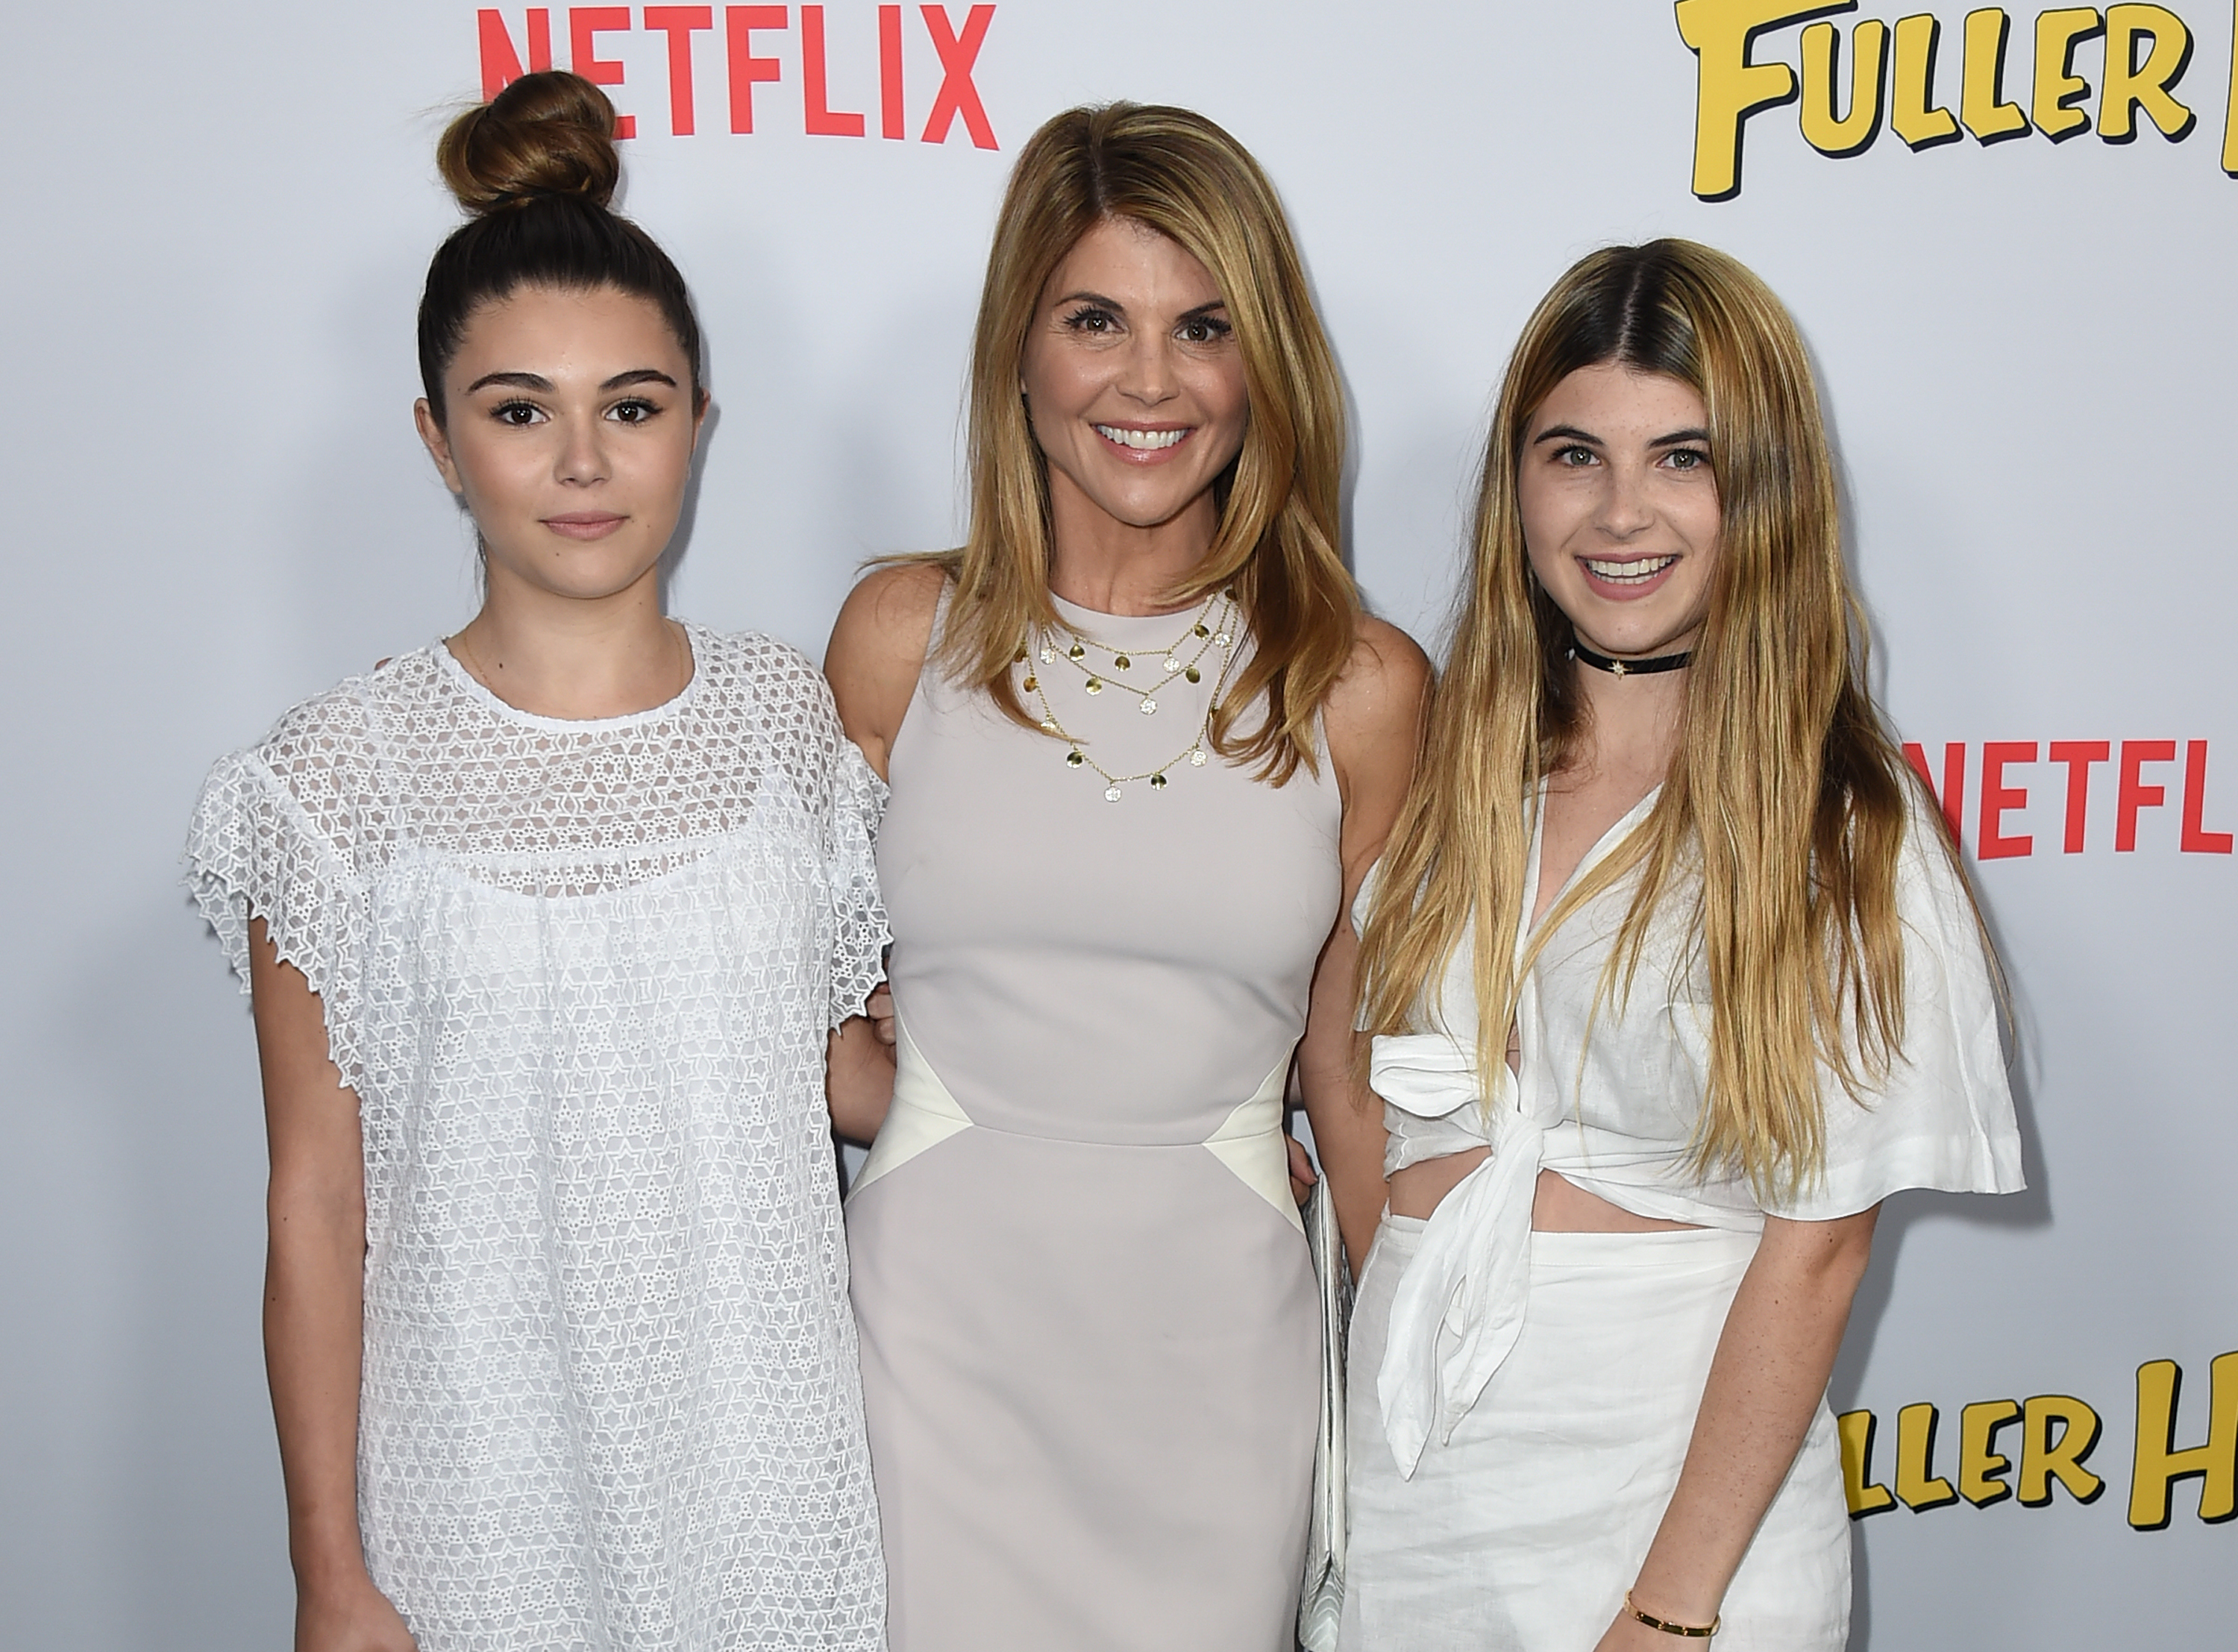 """Lori Loughlin, center, and her daughters Isabella Rose Giannulli and Olivia Jade Giannulli attend the premiere of """"Fuller House"""" on Feb. 16, 2016, in Los Angeles."""